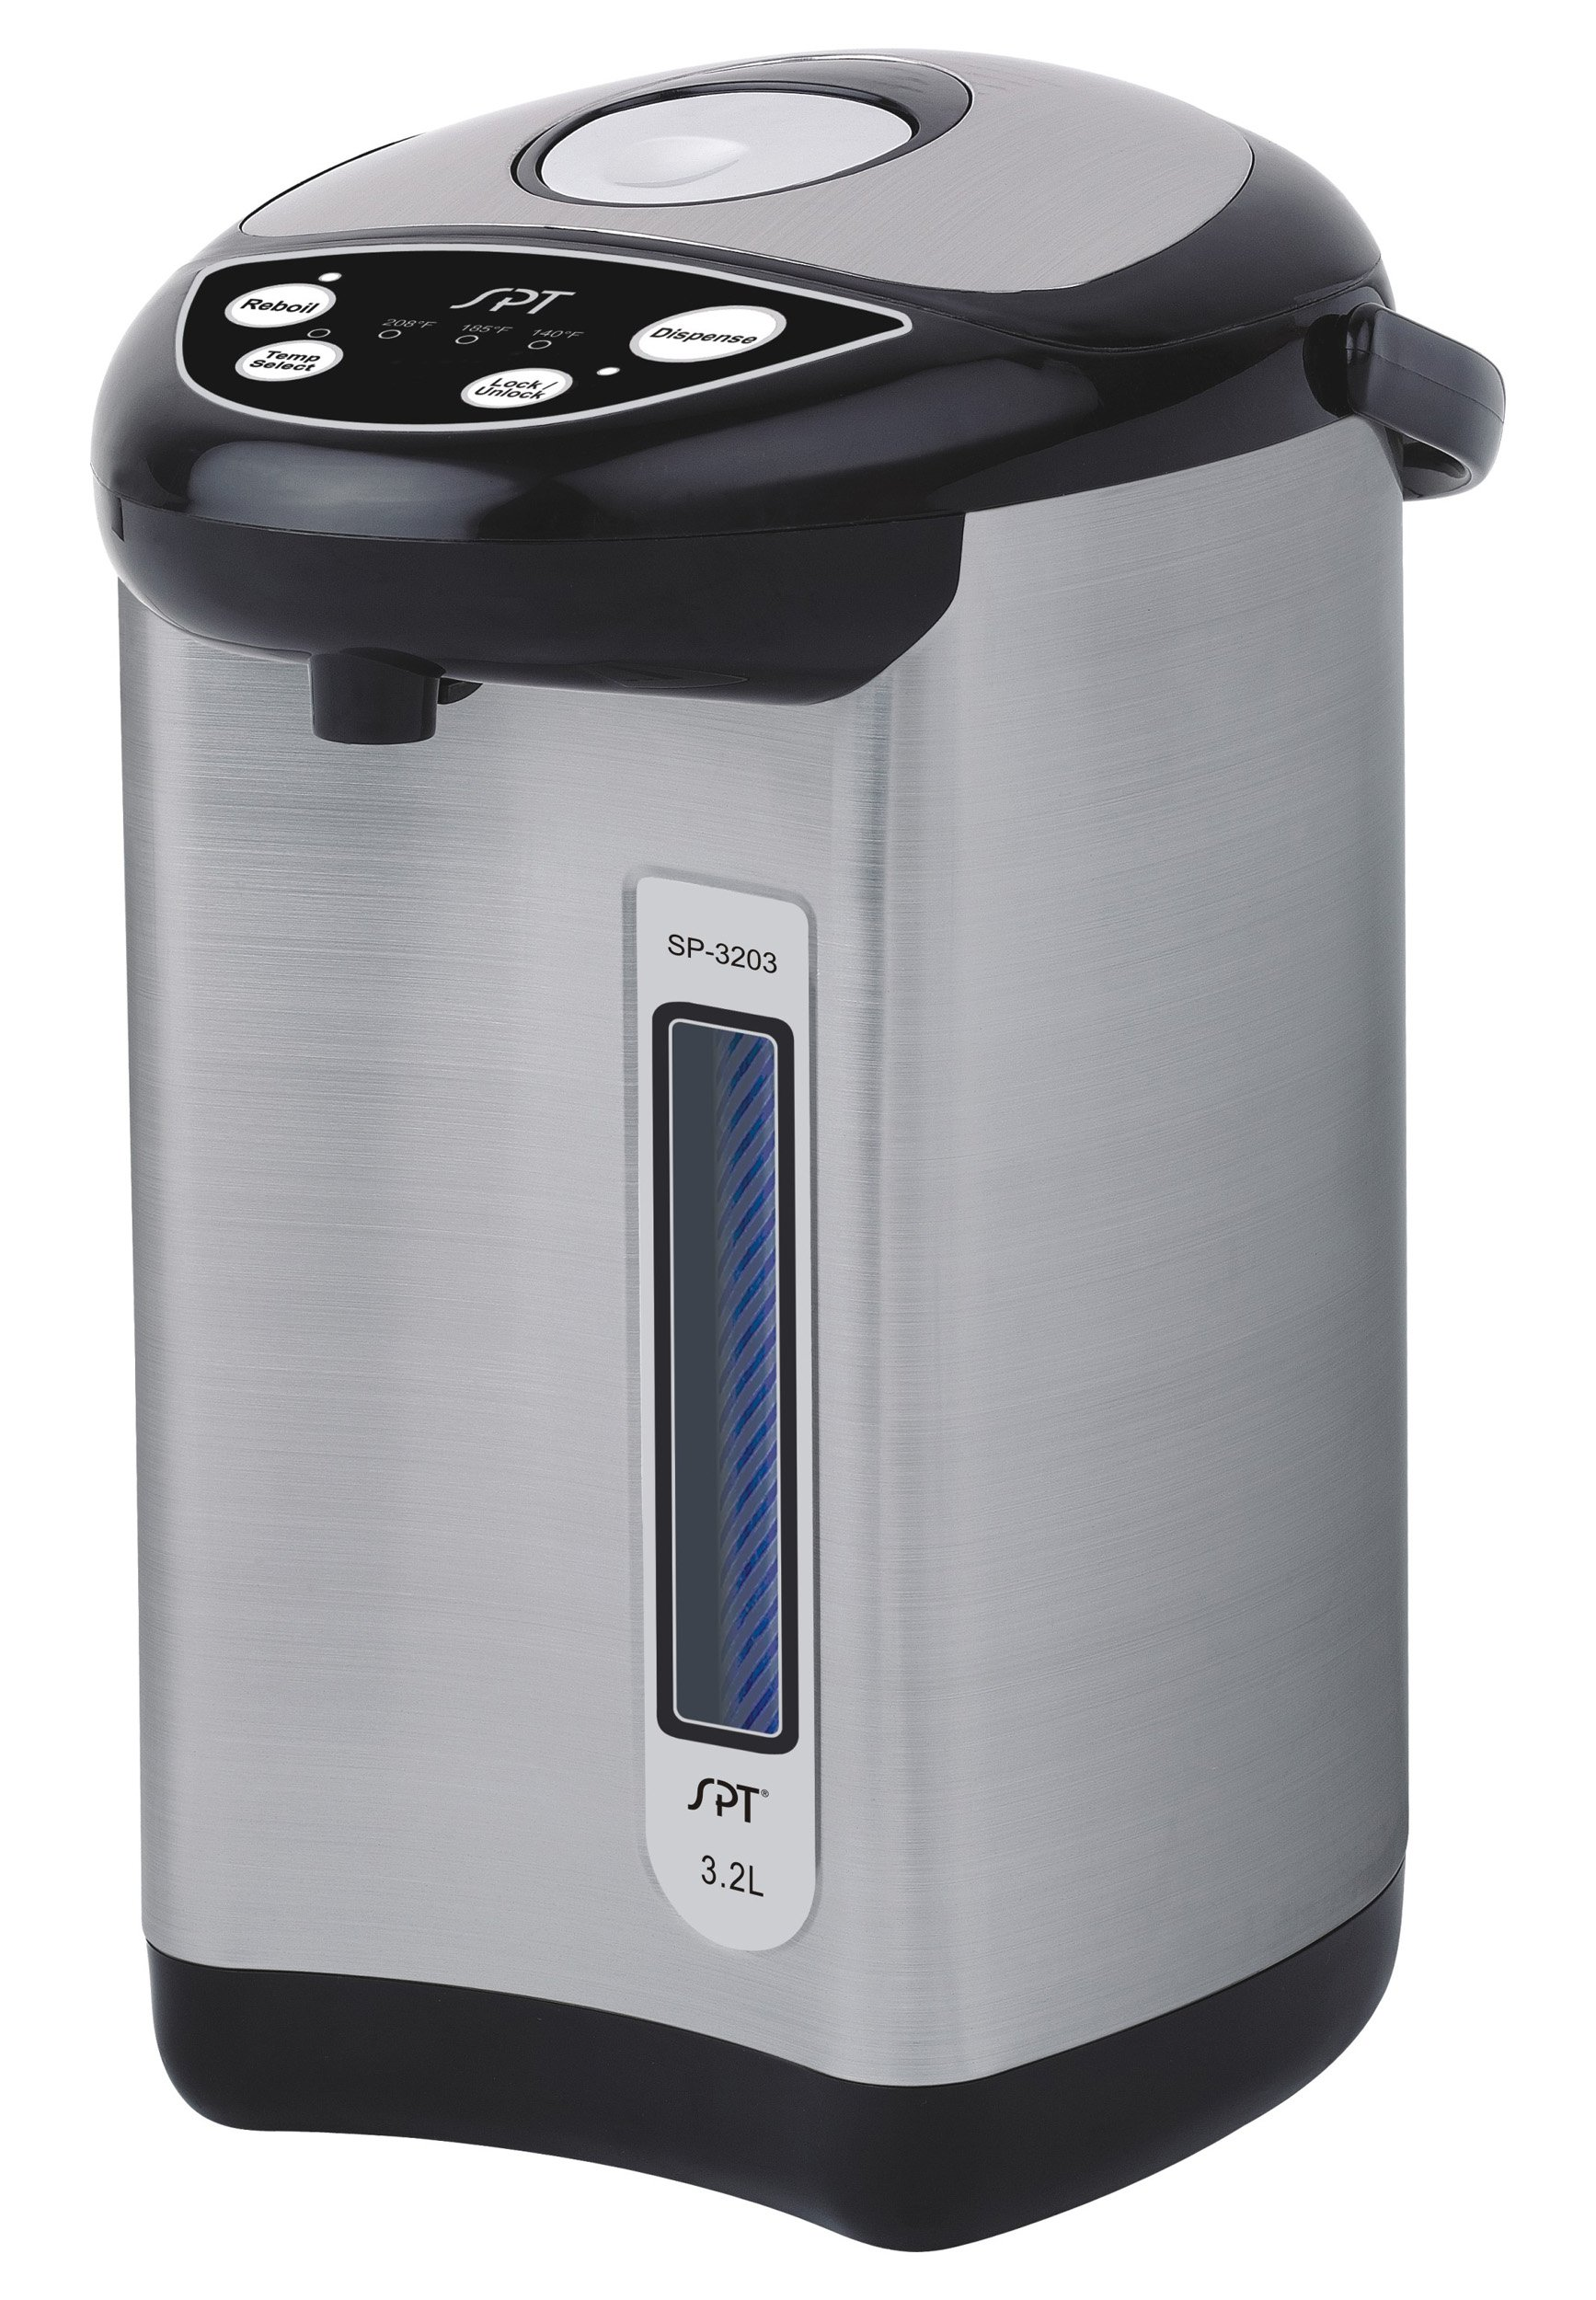 Spt 3.2-Liter Stainless with Multi-Temp Feature